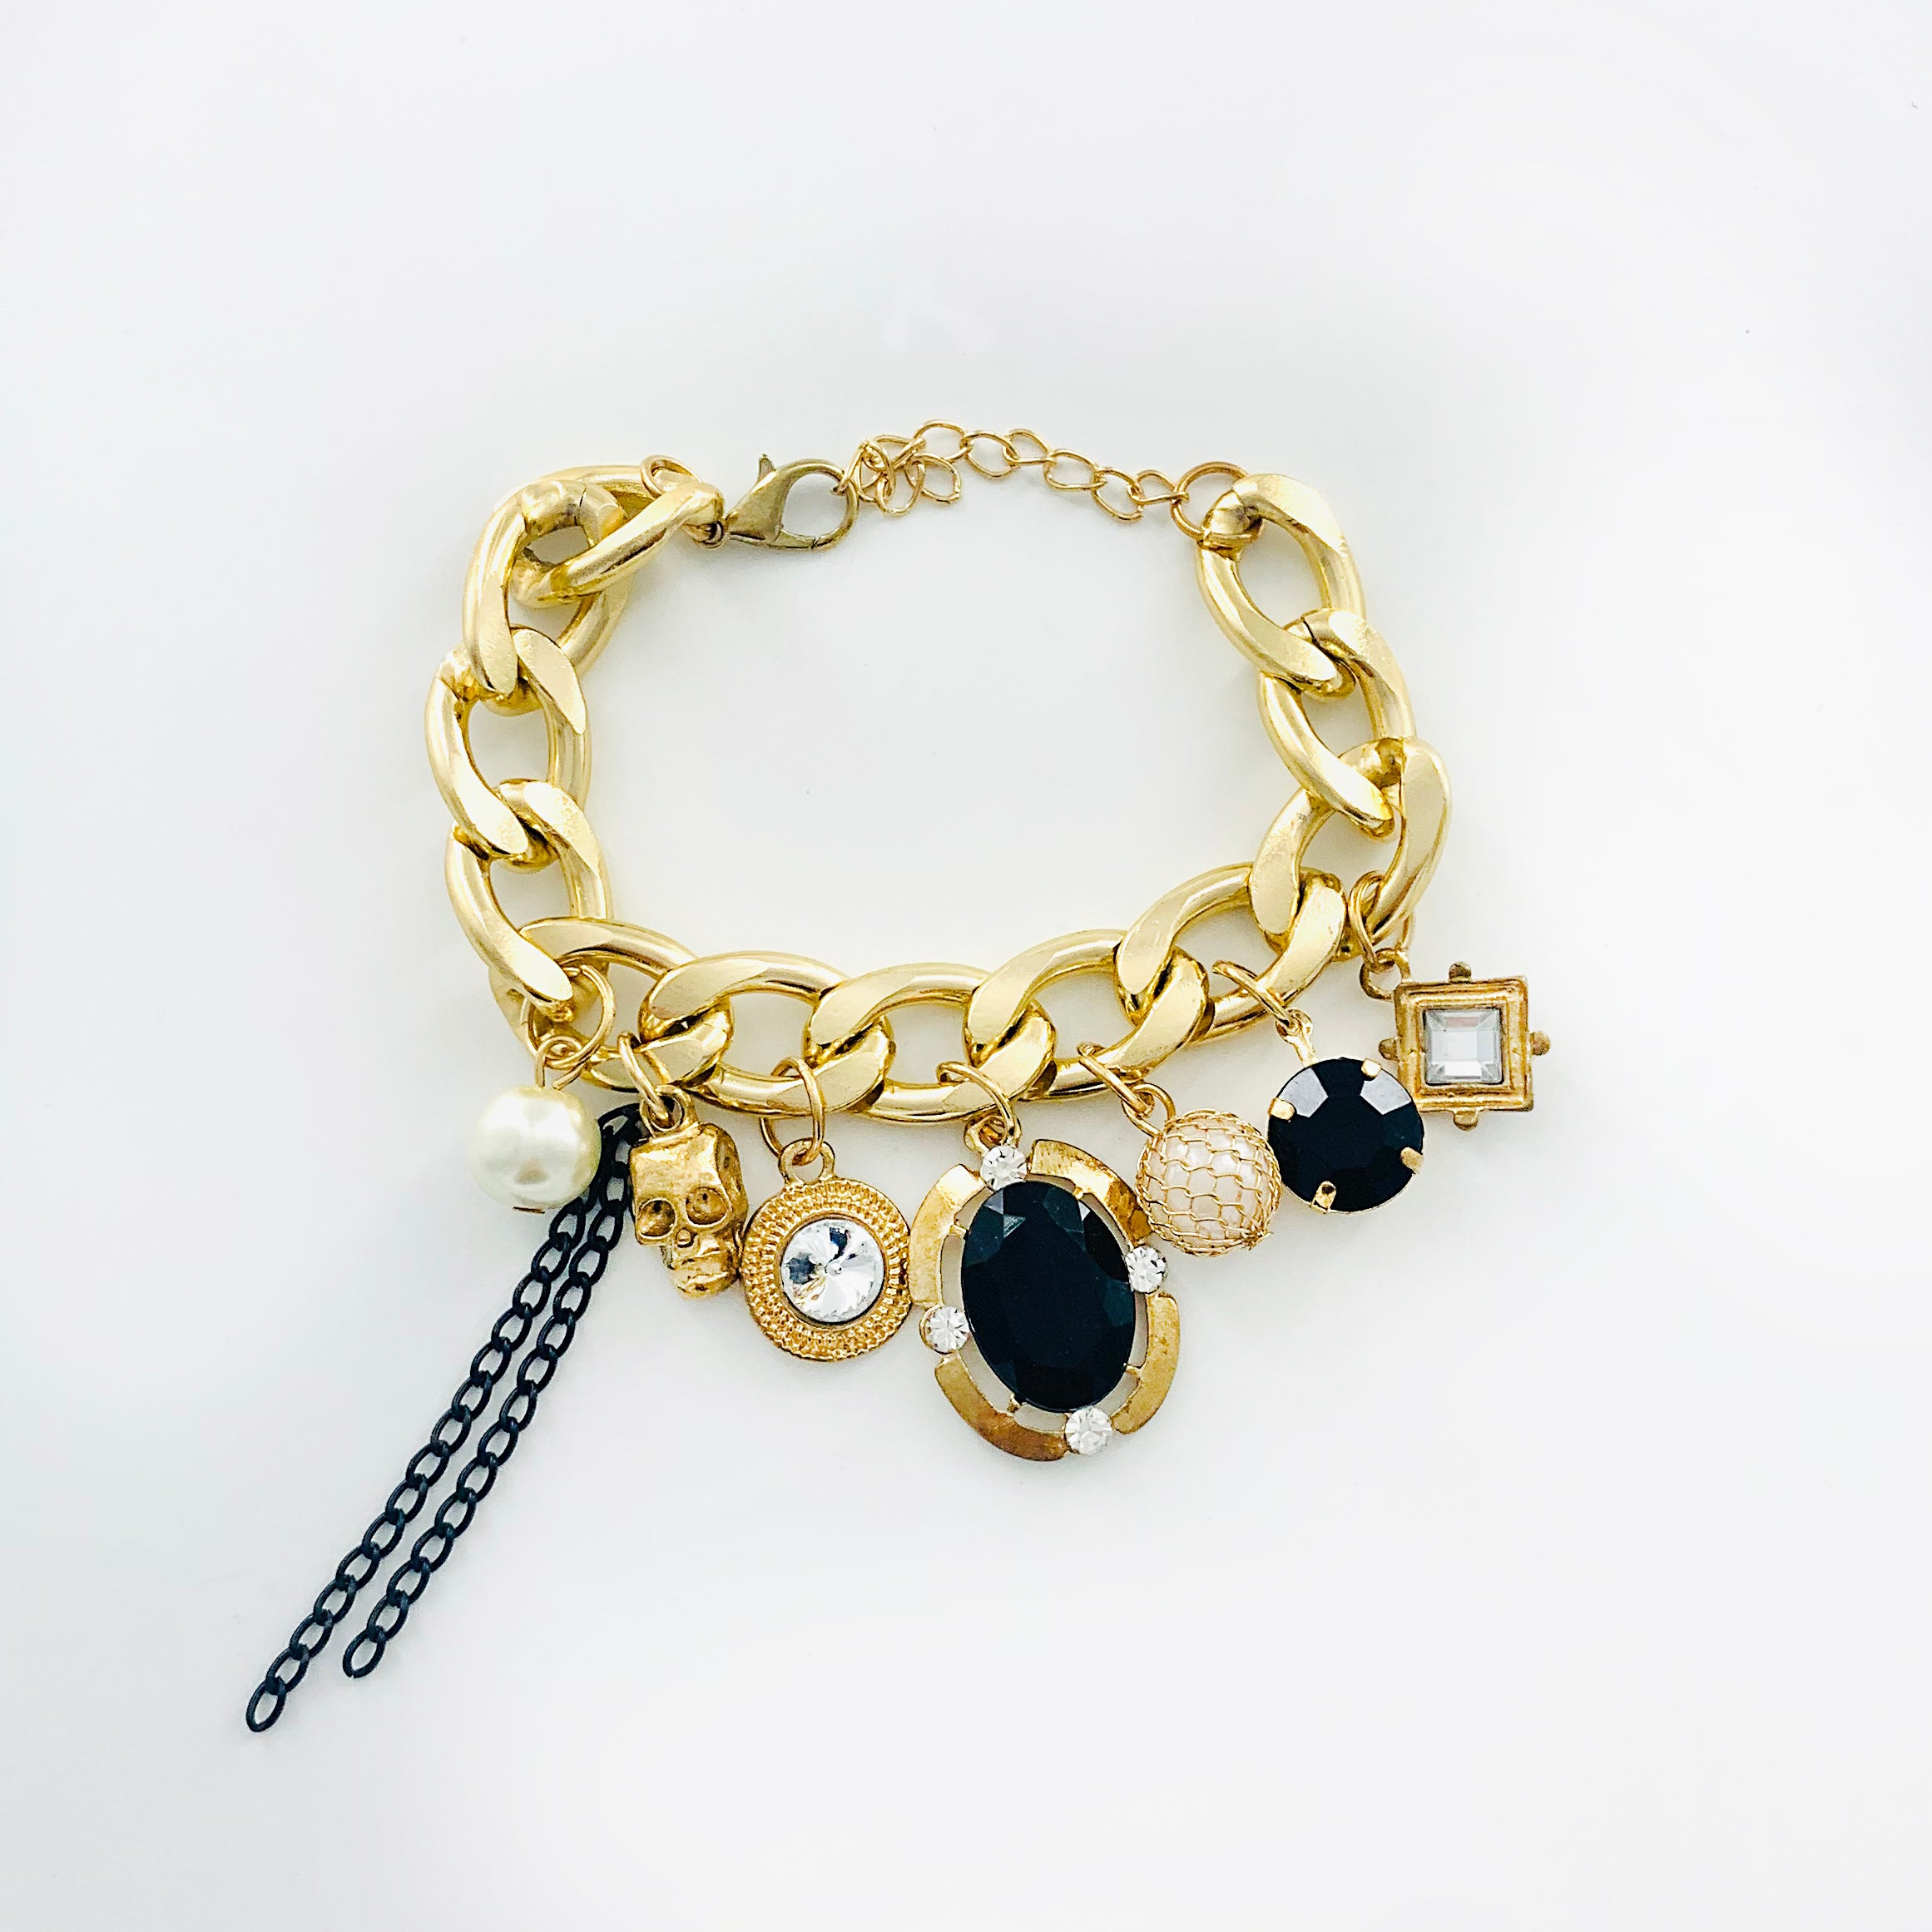 Gold chunky chain with skull and gem charms